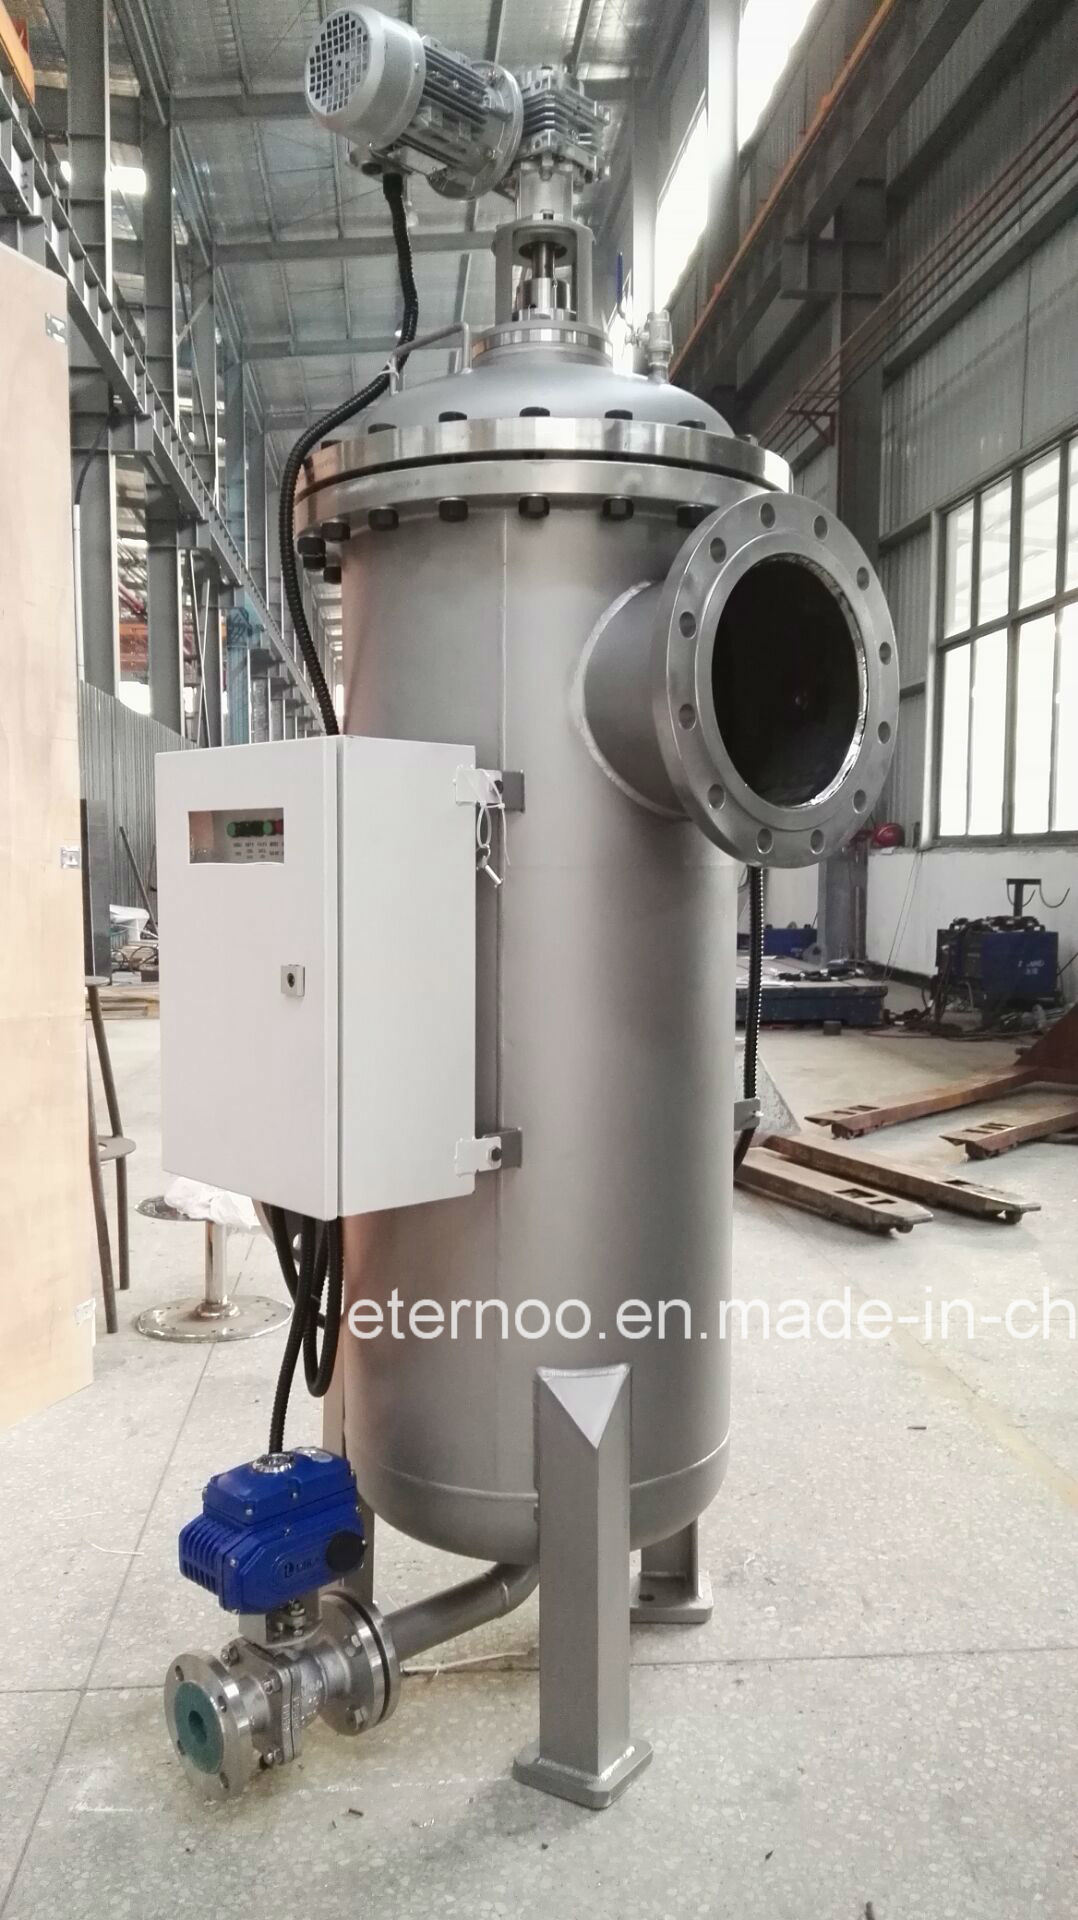 Industrial Automatic Self Cleaning Brush Water Filter